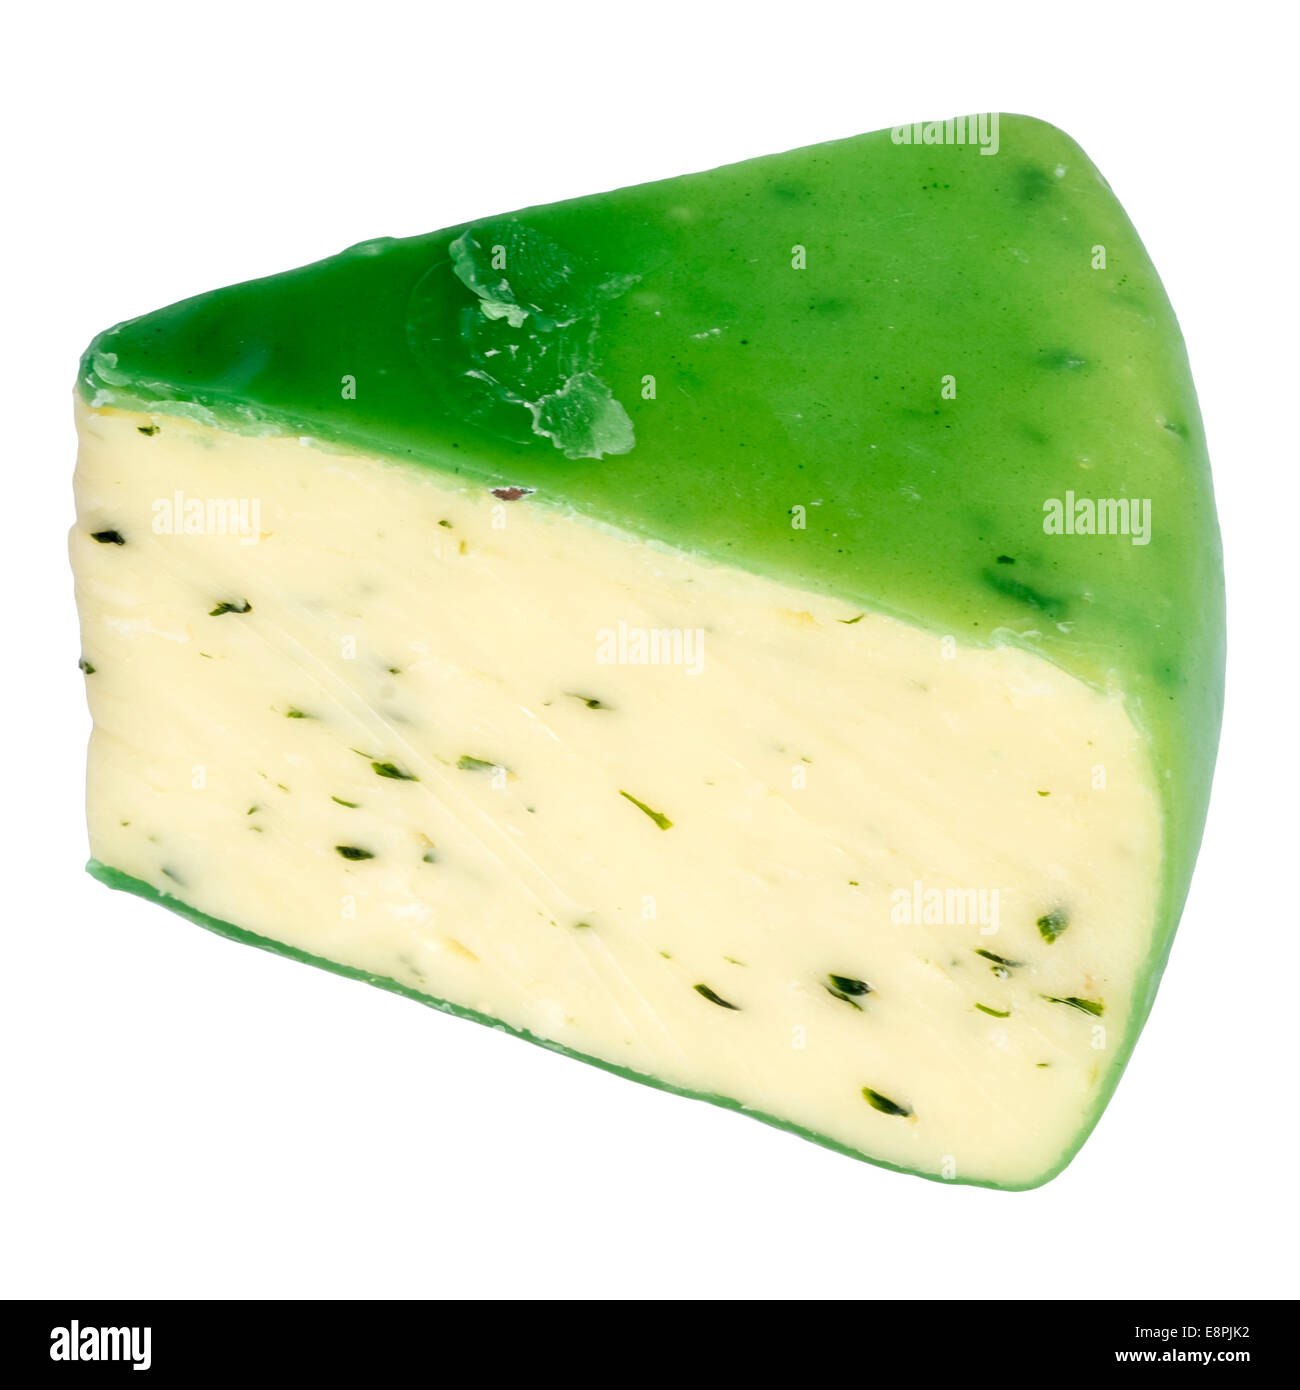 Wedge of Cheddar cheese & chives, cut out or isolated against a white background. Cheese sealed with green wax. - Stock Image